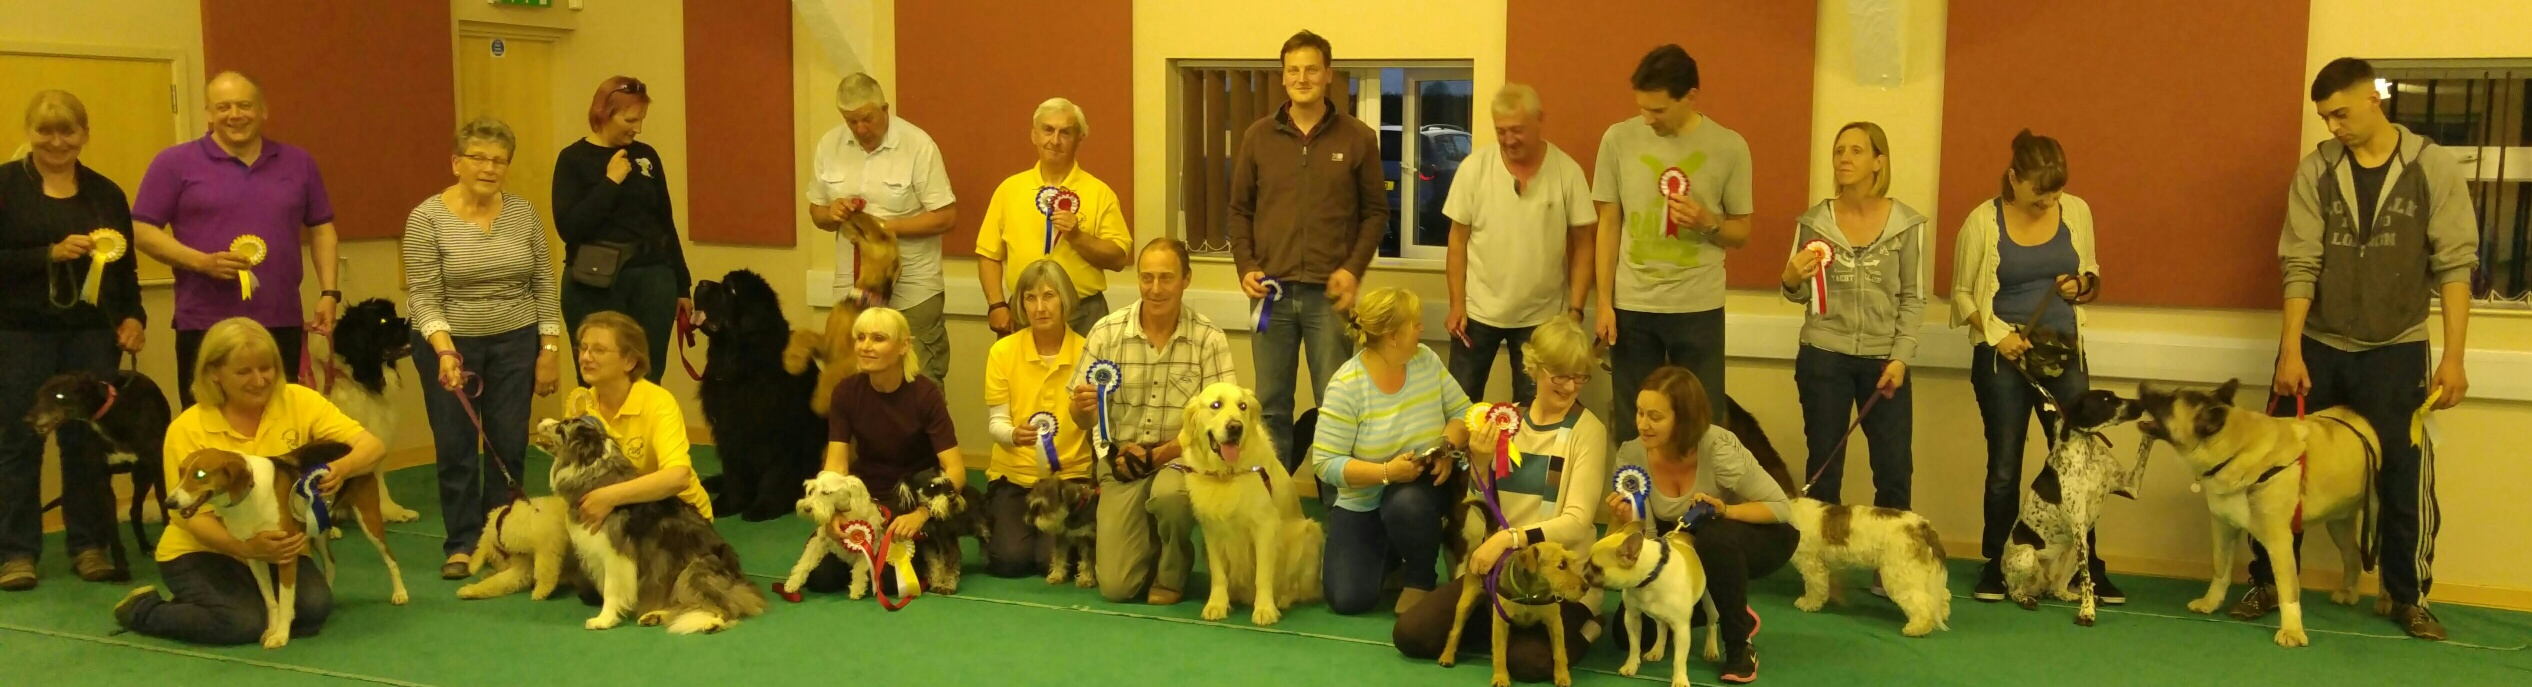 Sudbury Pet Dog Training Club